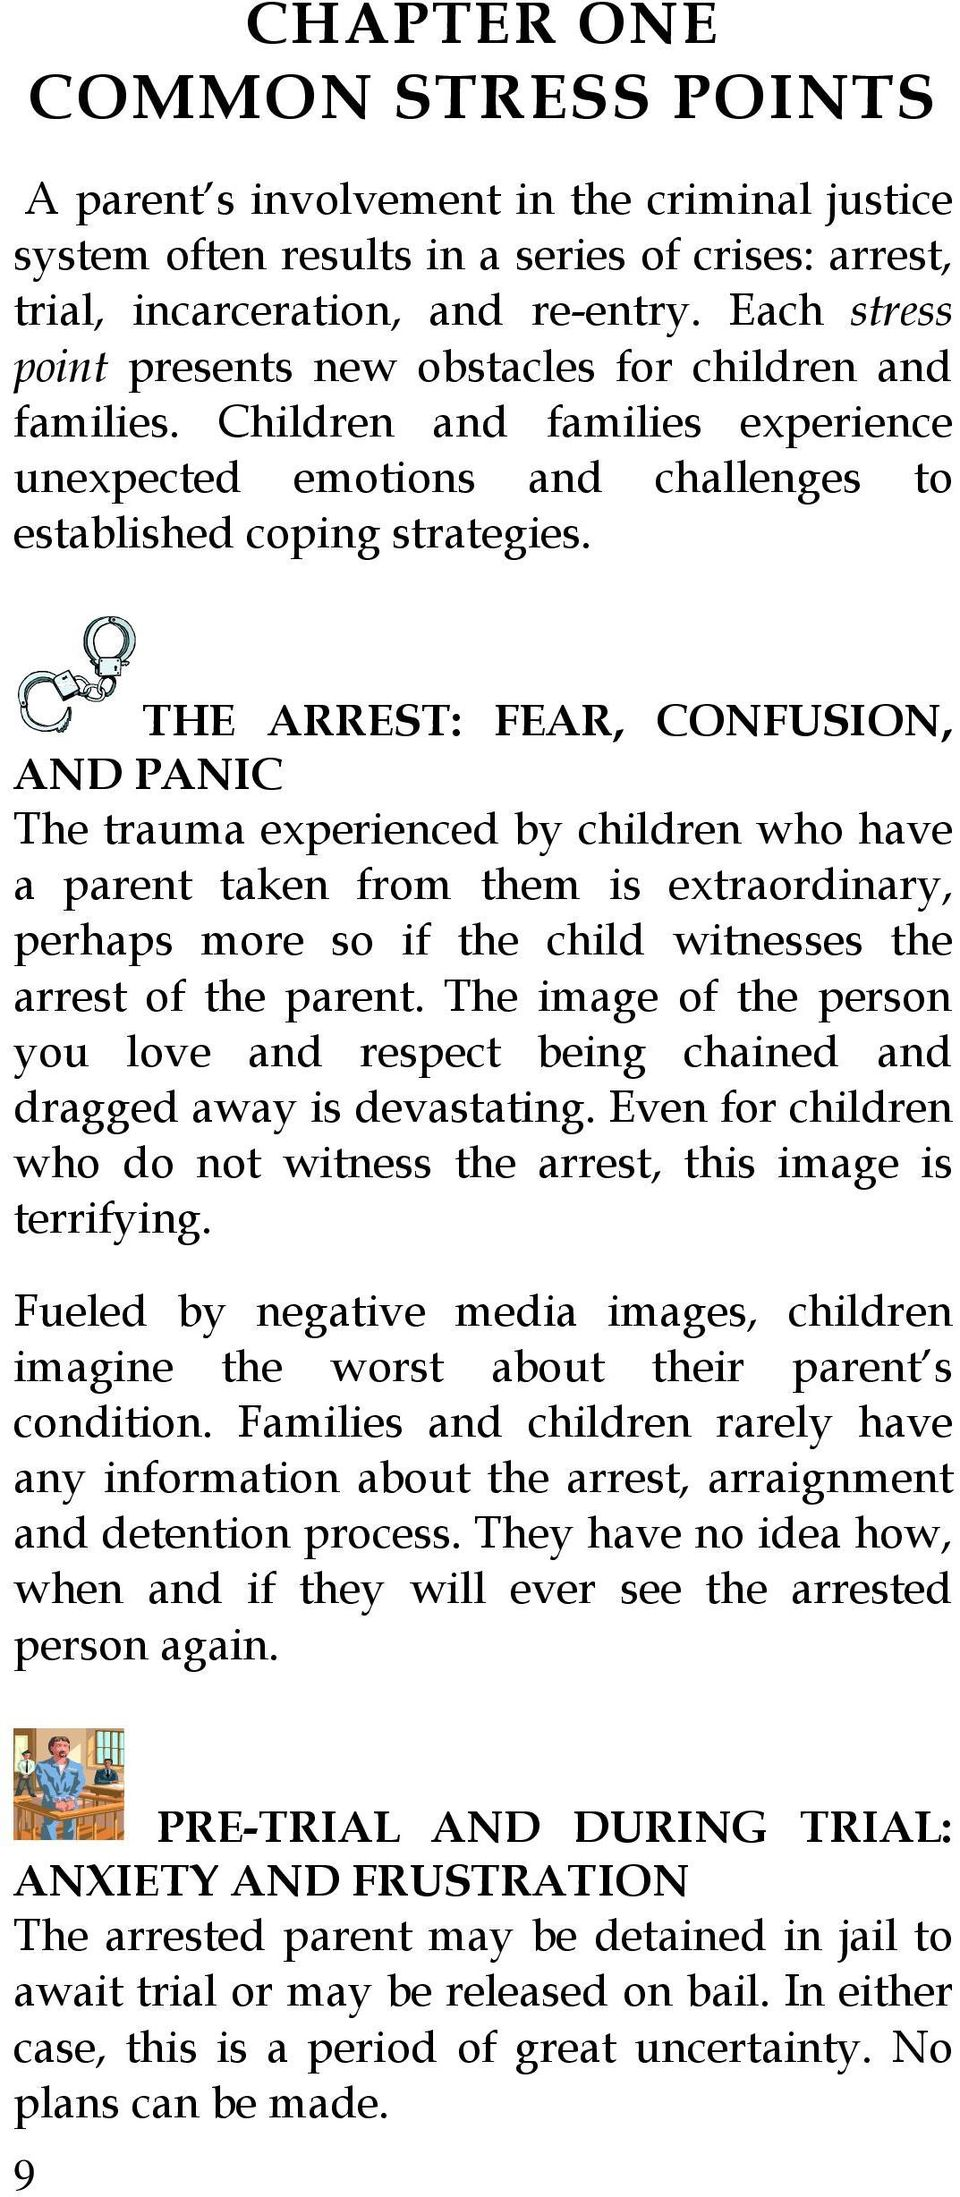 THE ARREST: FEAR, CONFUSION, AND PANIC The trauma experienced by children who have a parent taken from them is extraordinary, perhaps more so if the child witnesses the arrest of the parent.